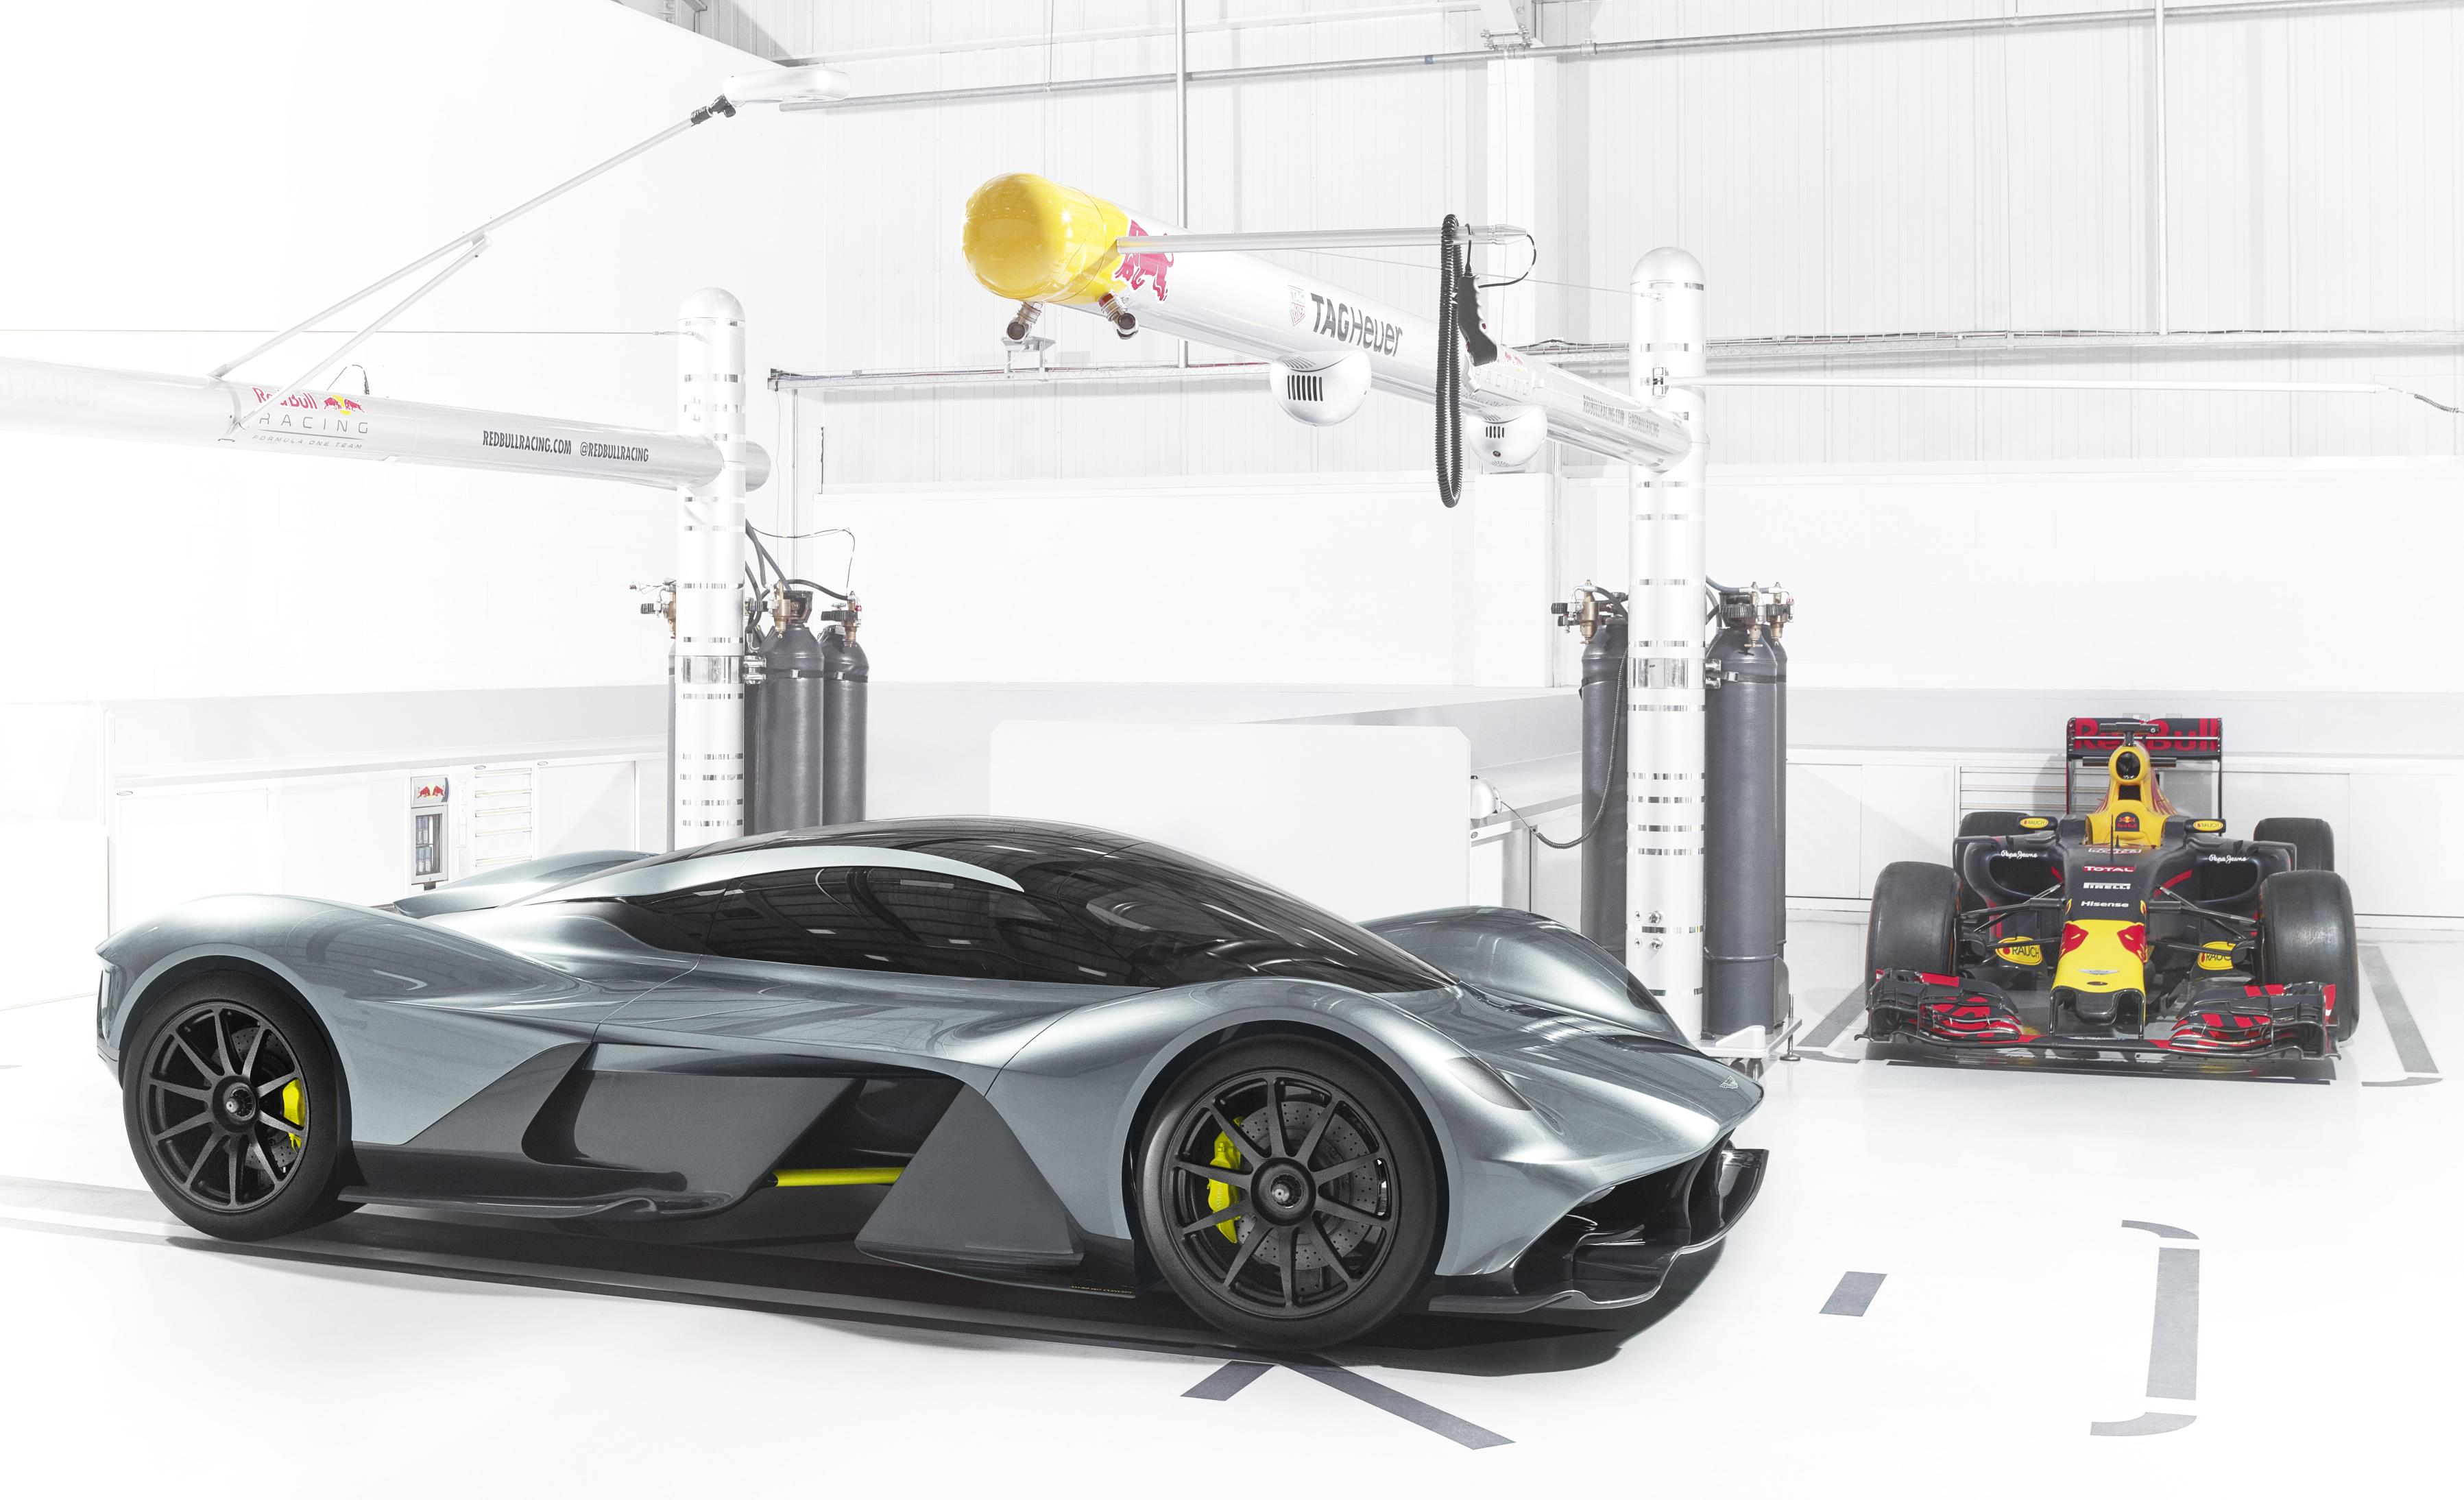 aston-martin-hypercar-to-spawn-mid-engine-supercar-more-new-models-to-come-110140_1